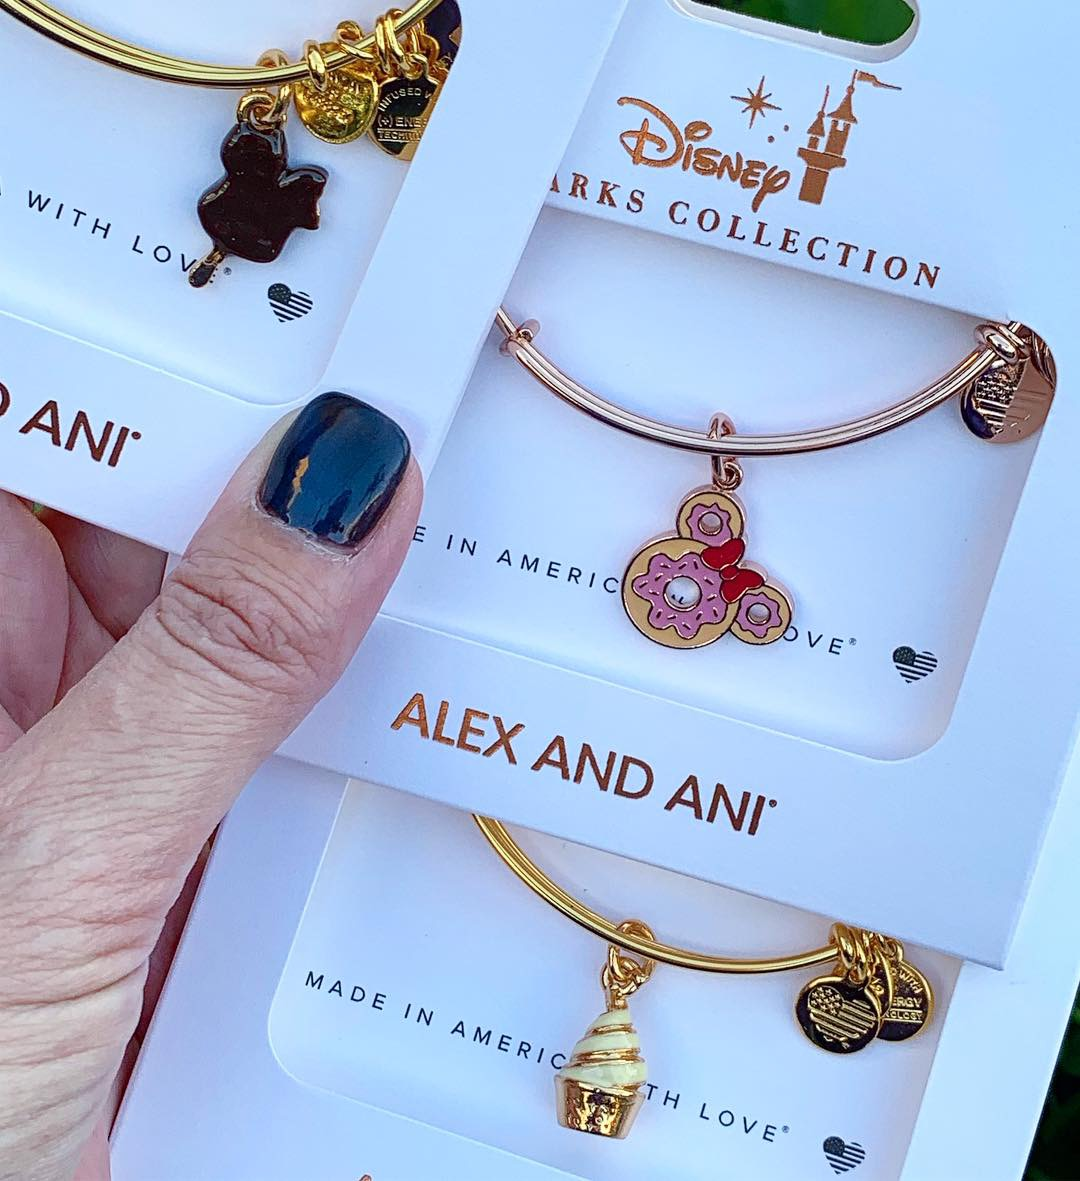 The tastiest D-lish treat Alex and Ani Bracelets have arrived! 2